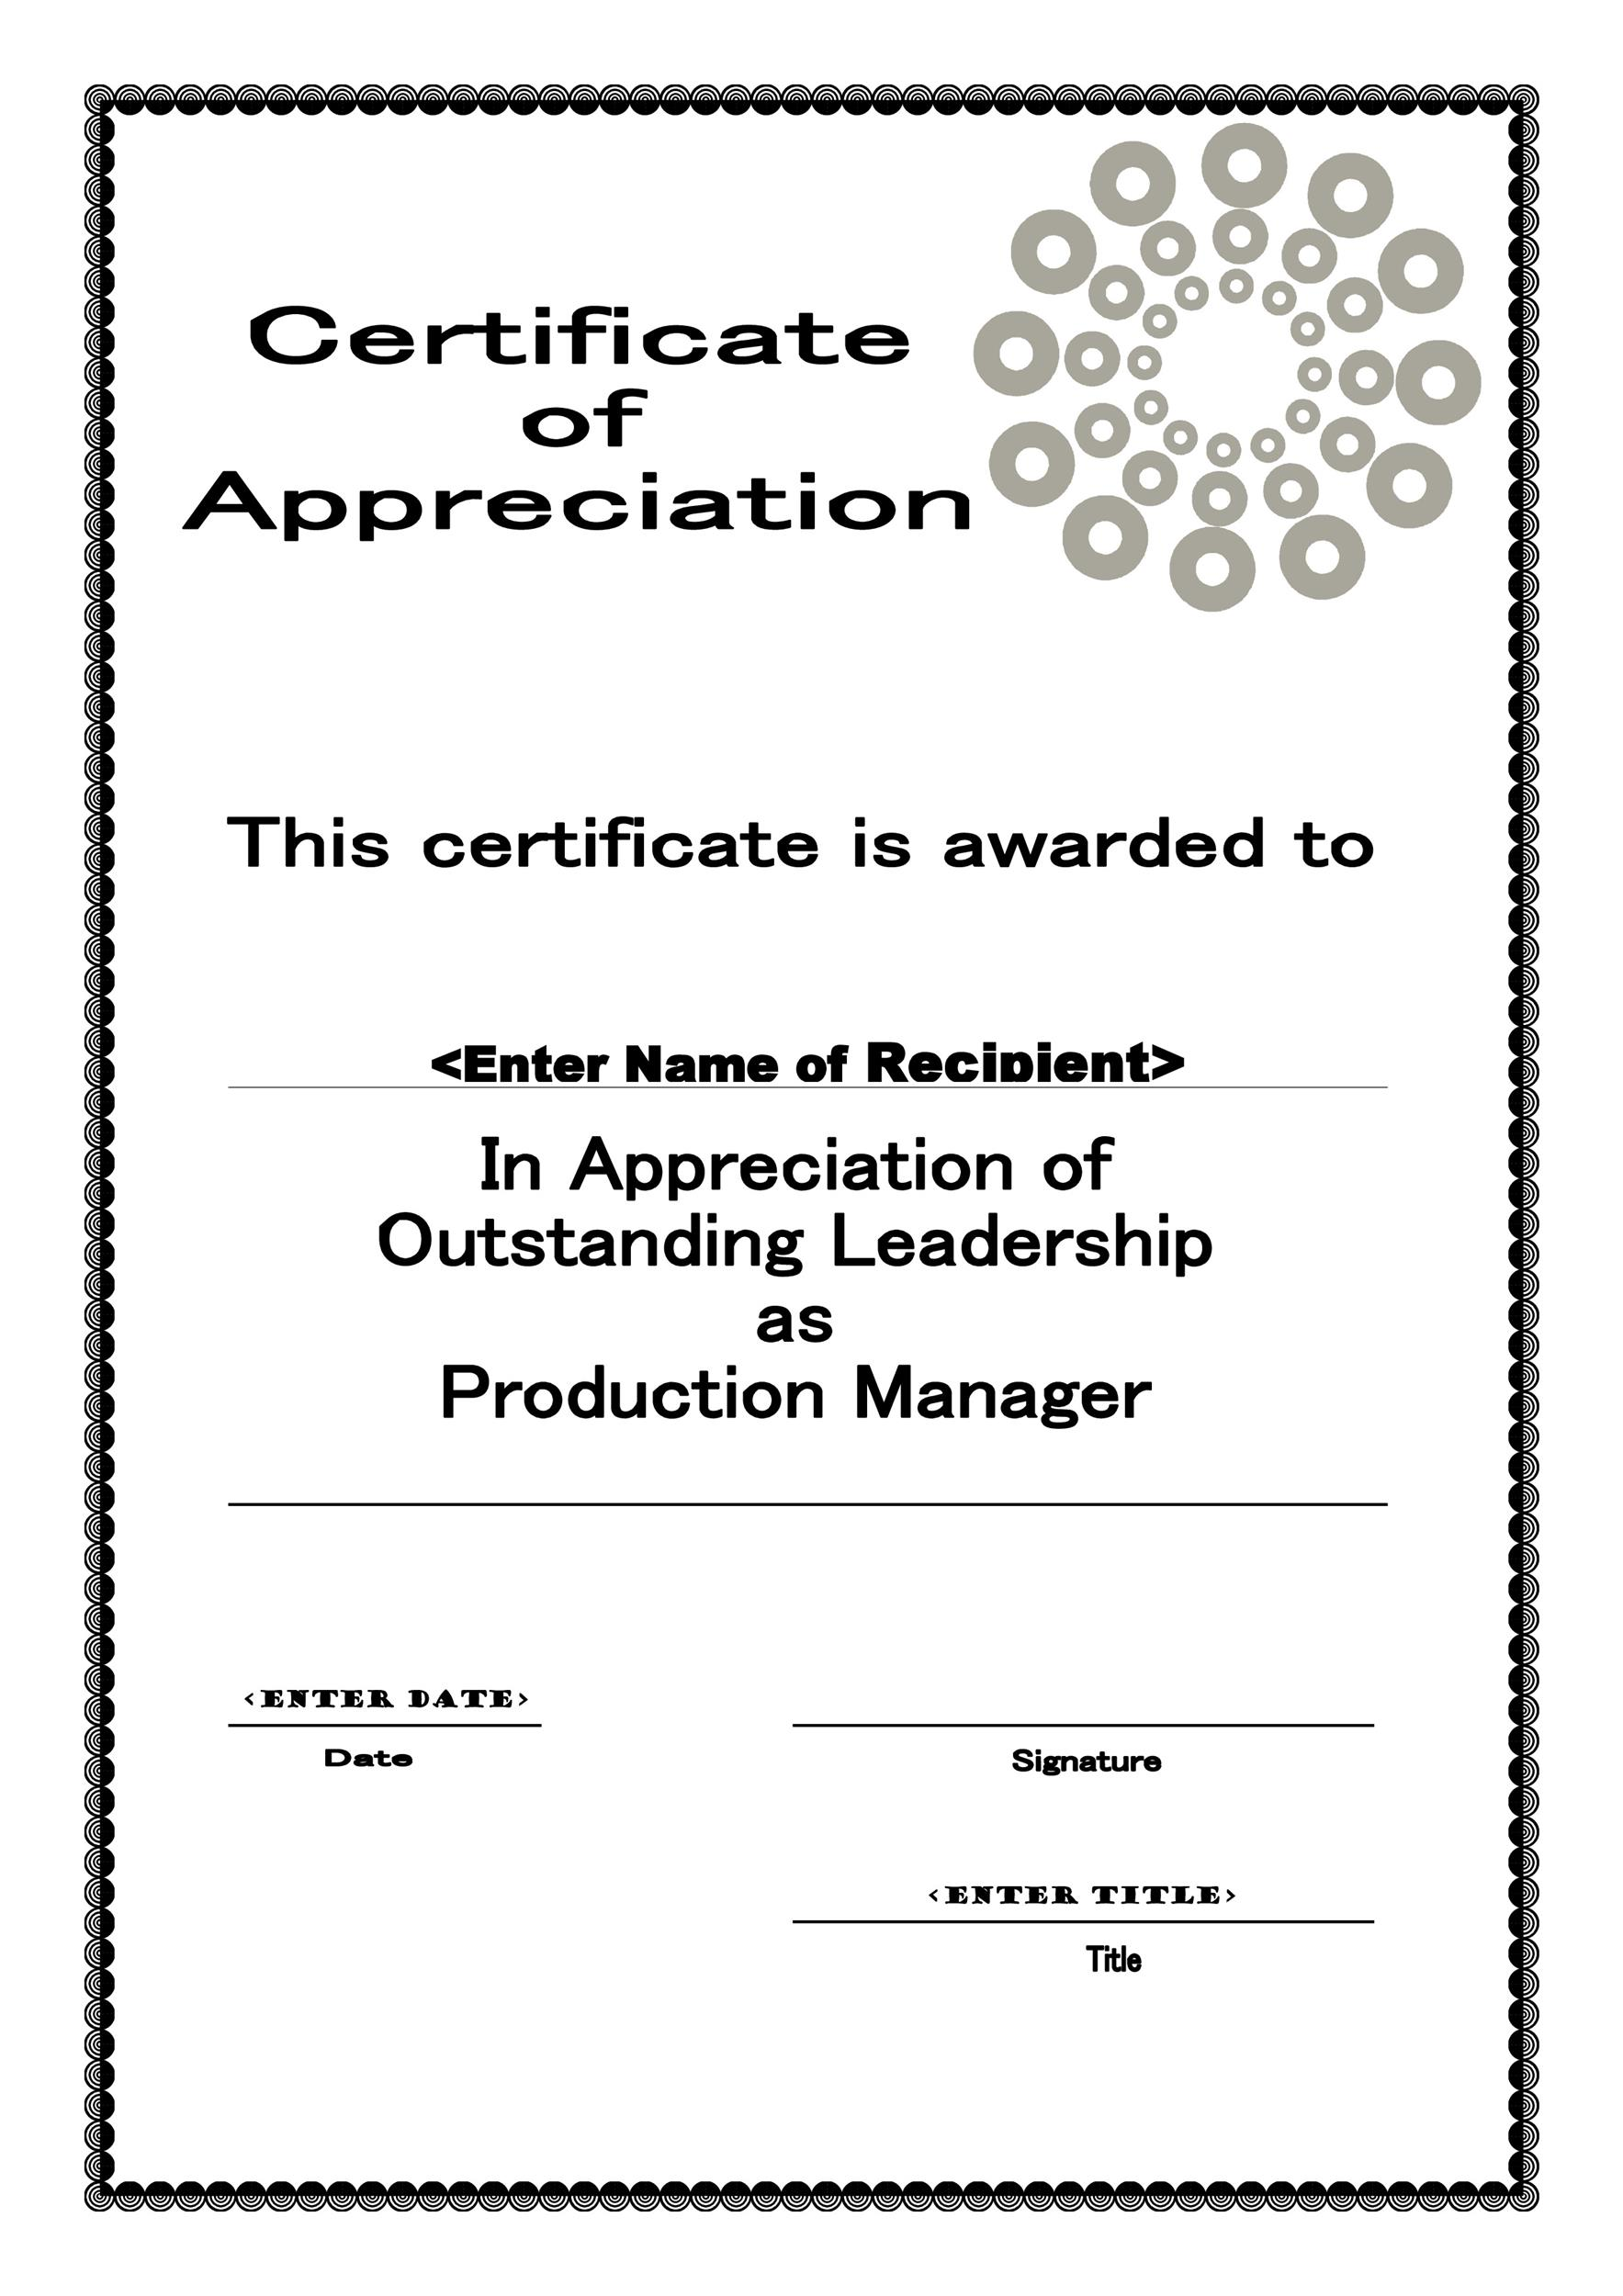 free certificate of appreciation 11